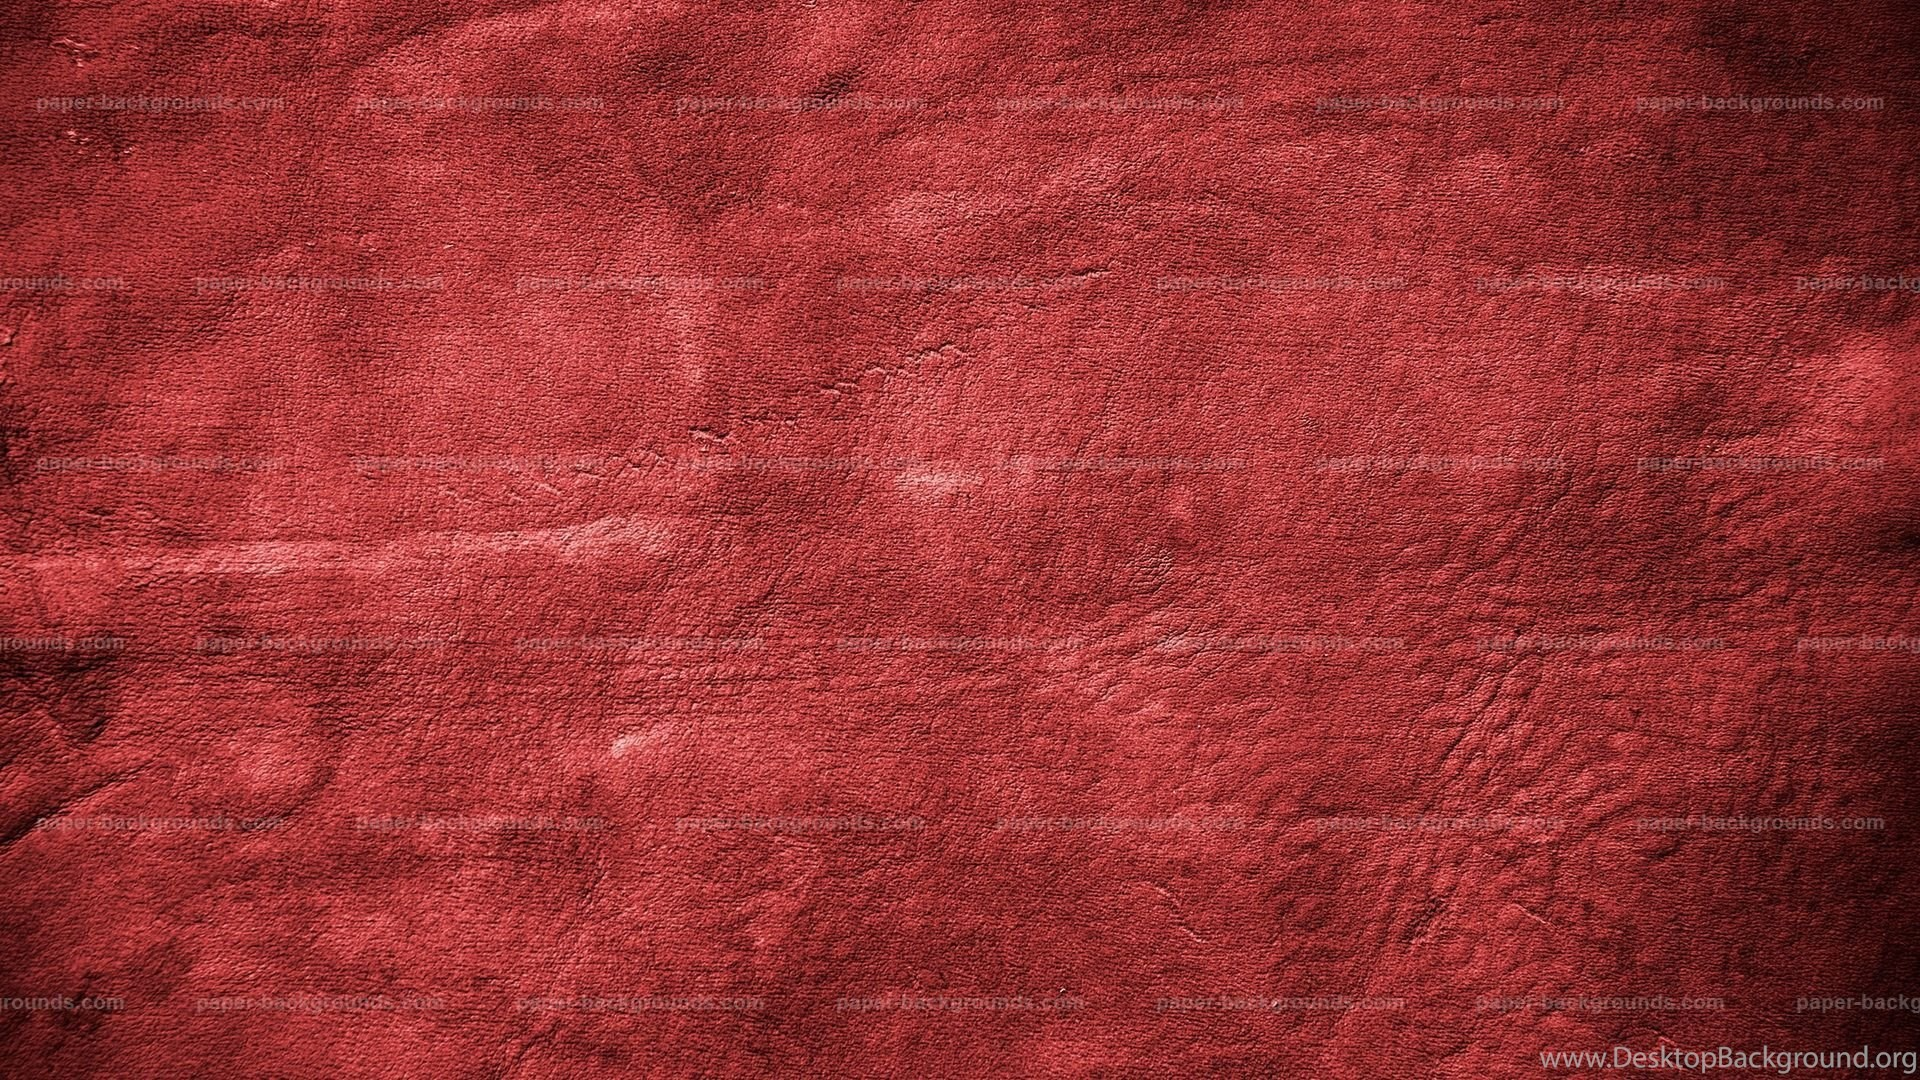 Vintage Red Soft Leather Texture Backgrounds – Paper Backgrounds ...